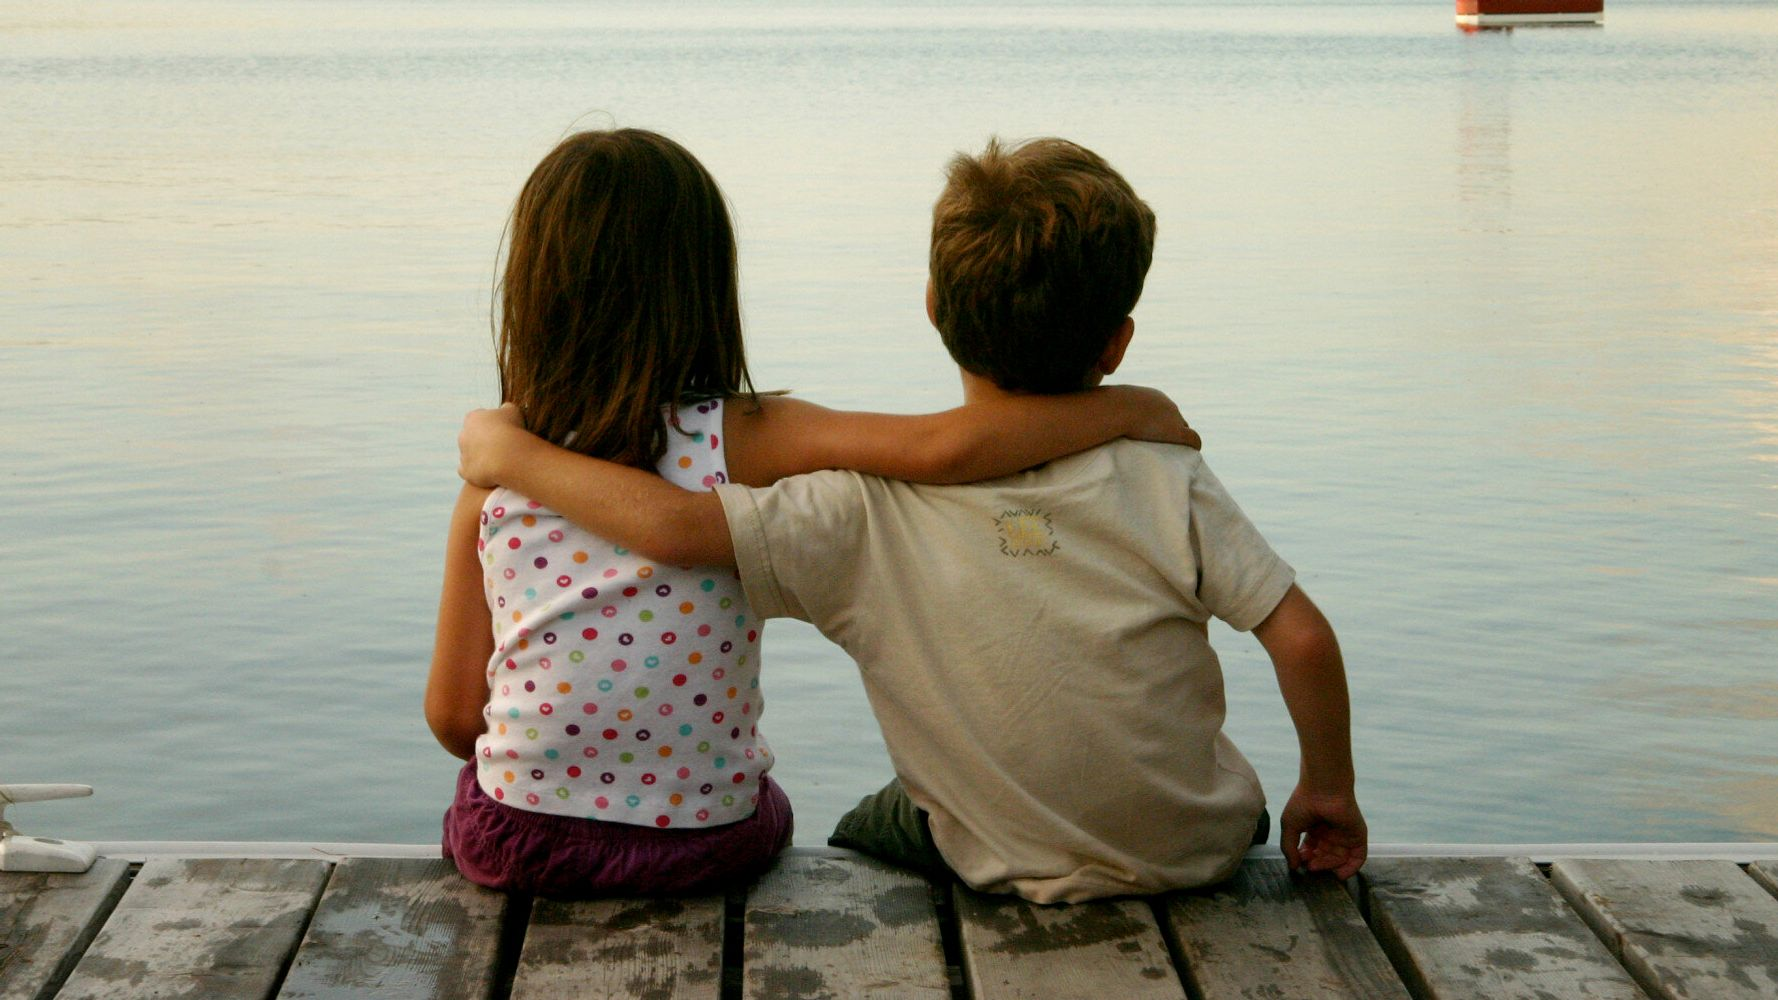 10 True Facts About Friendship: What Scientists Have To Say